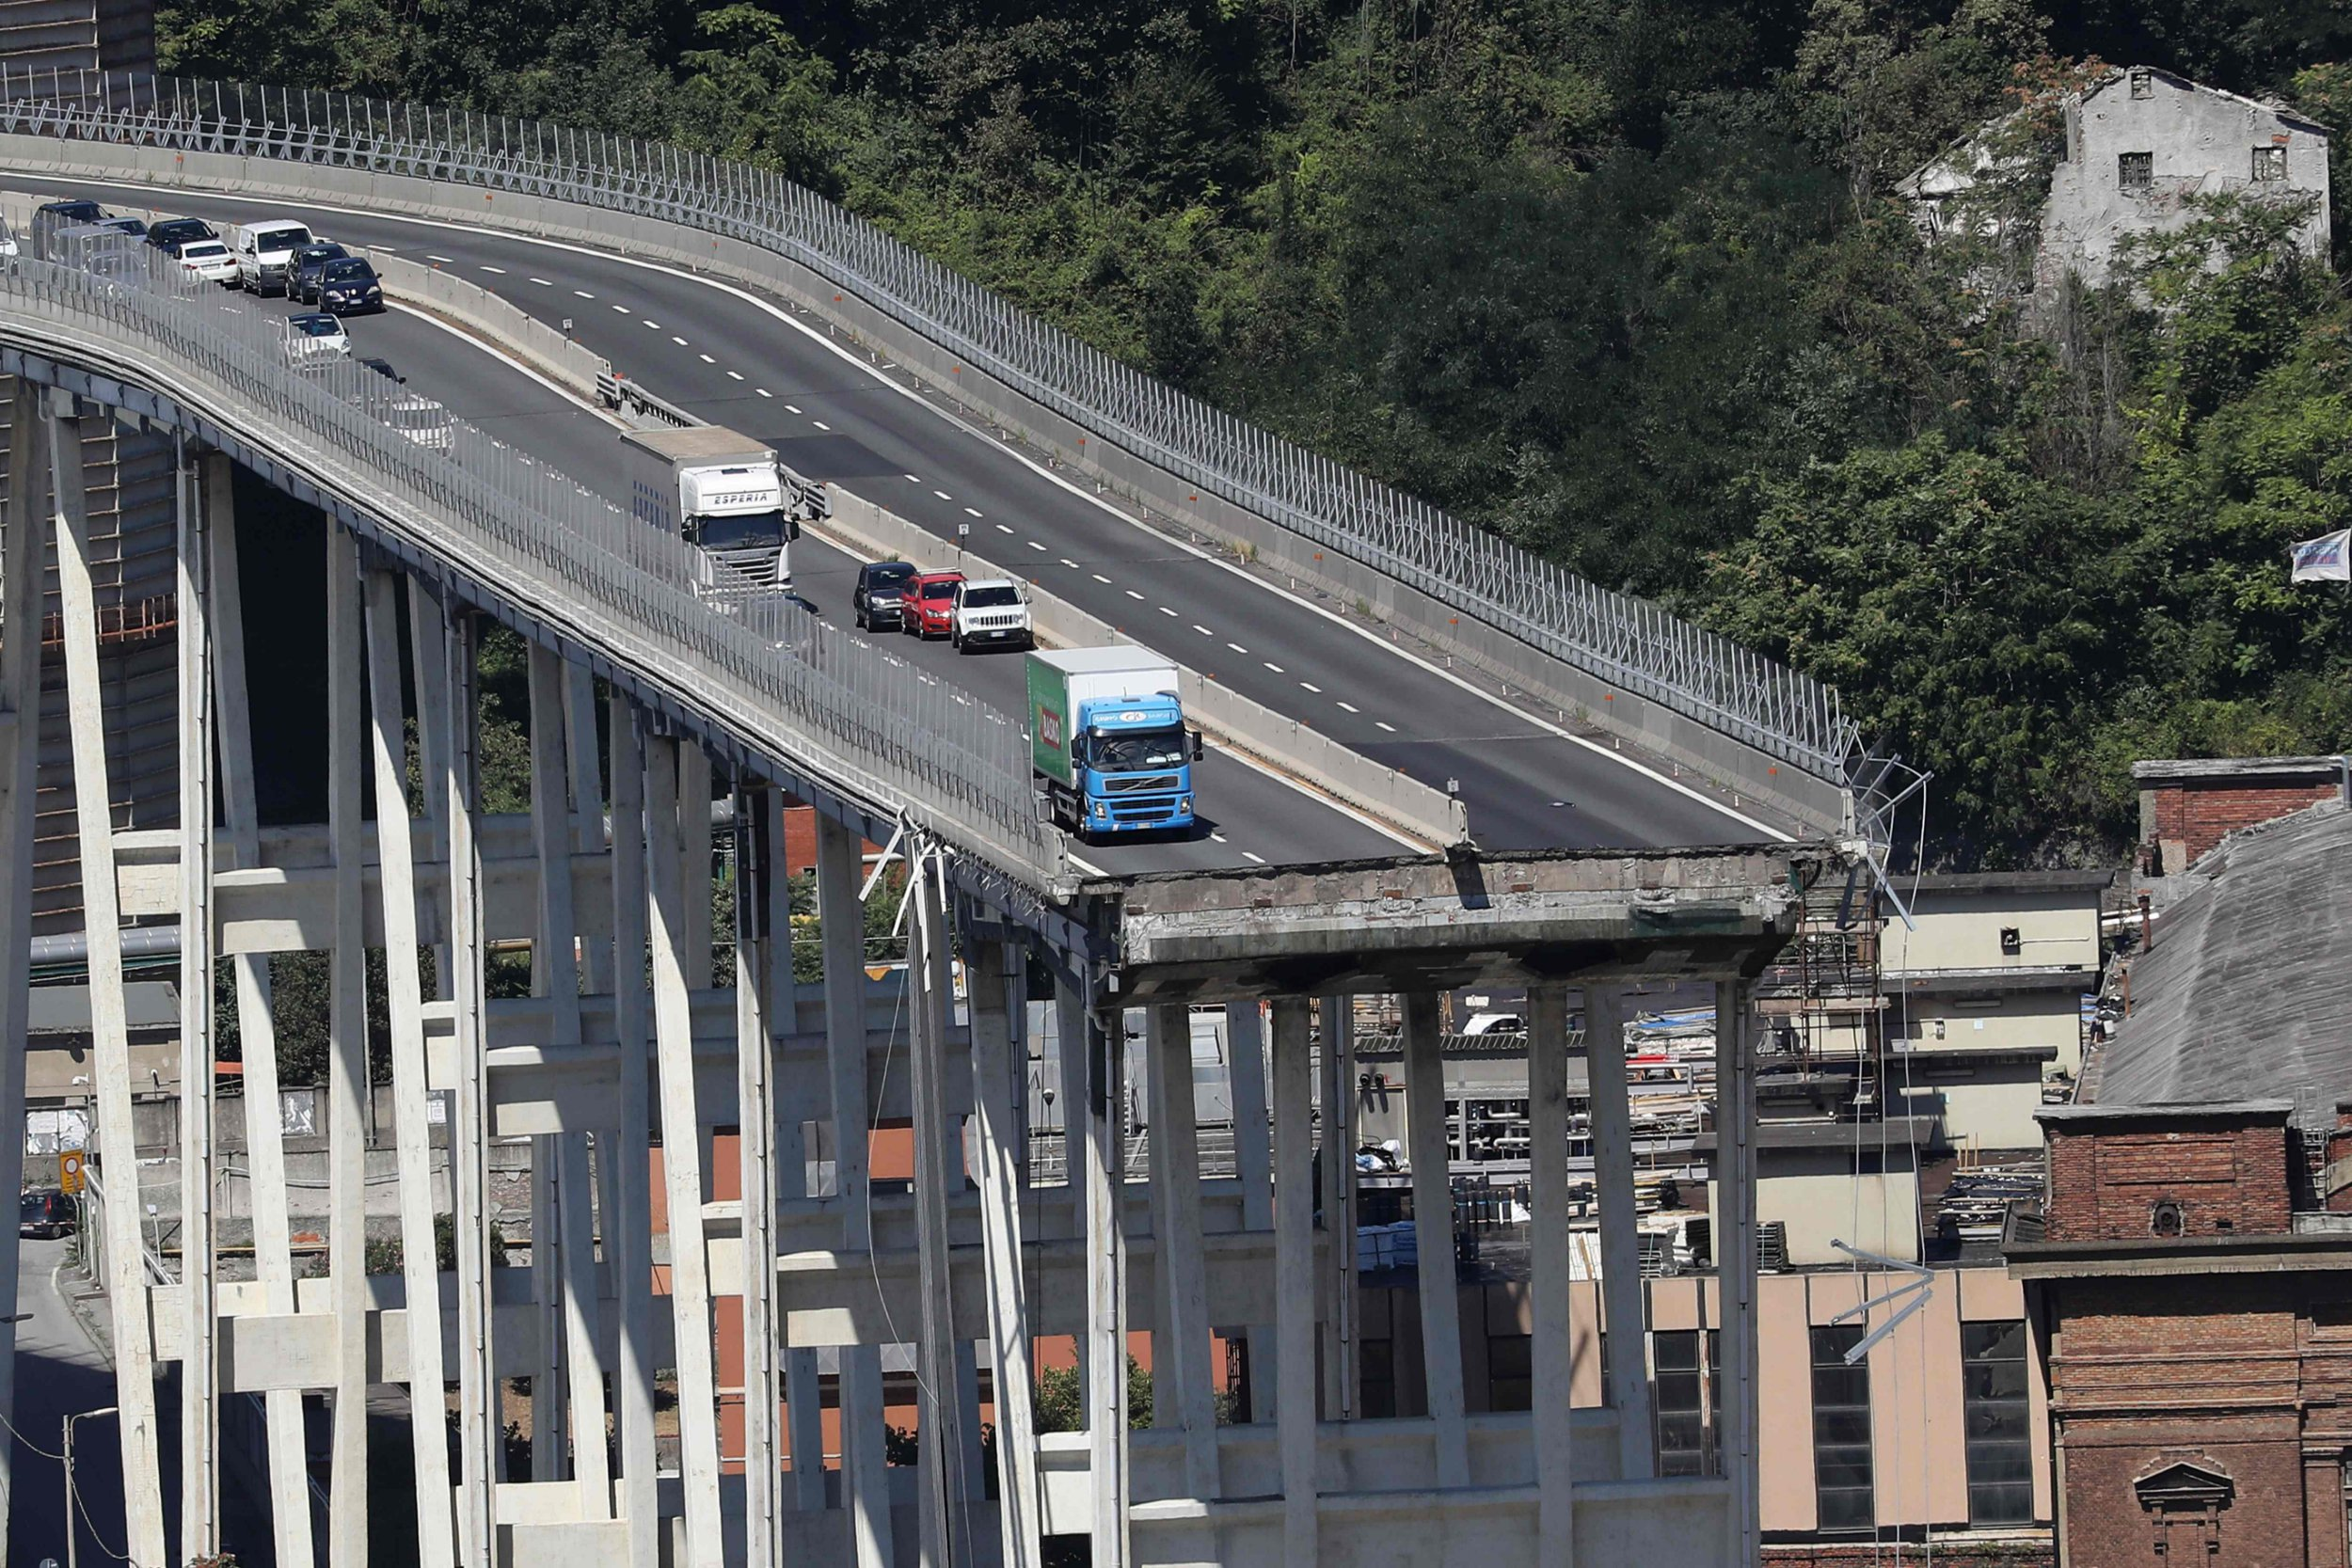 TOPSHOT - This general view taken on August 15, 2018, shows abandoned vehicles on the Morandi motorway bridge the day after a section collapsed in the north-western Italian city of Genoa. - At least 38 people were killed on August 14, when the giant motorway bridge collapsed in Genoa in northwestern Italy. The collapse, which saw a vast stretch of the A10 freeway tumble on to railway lines in the northern port city, was the deadliest bridge failure in Italy for years, and the country's deputy transport minister warned the death toll could climb further. (Photo by Valery HACHE / AFP)VALERY HACHE/AFP/Getty Images